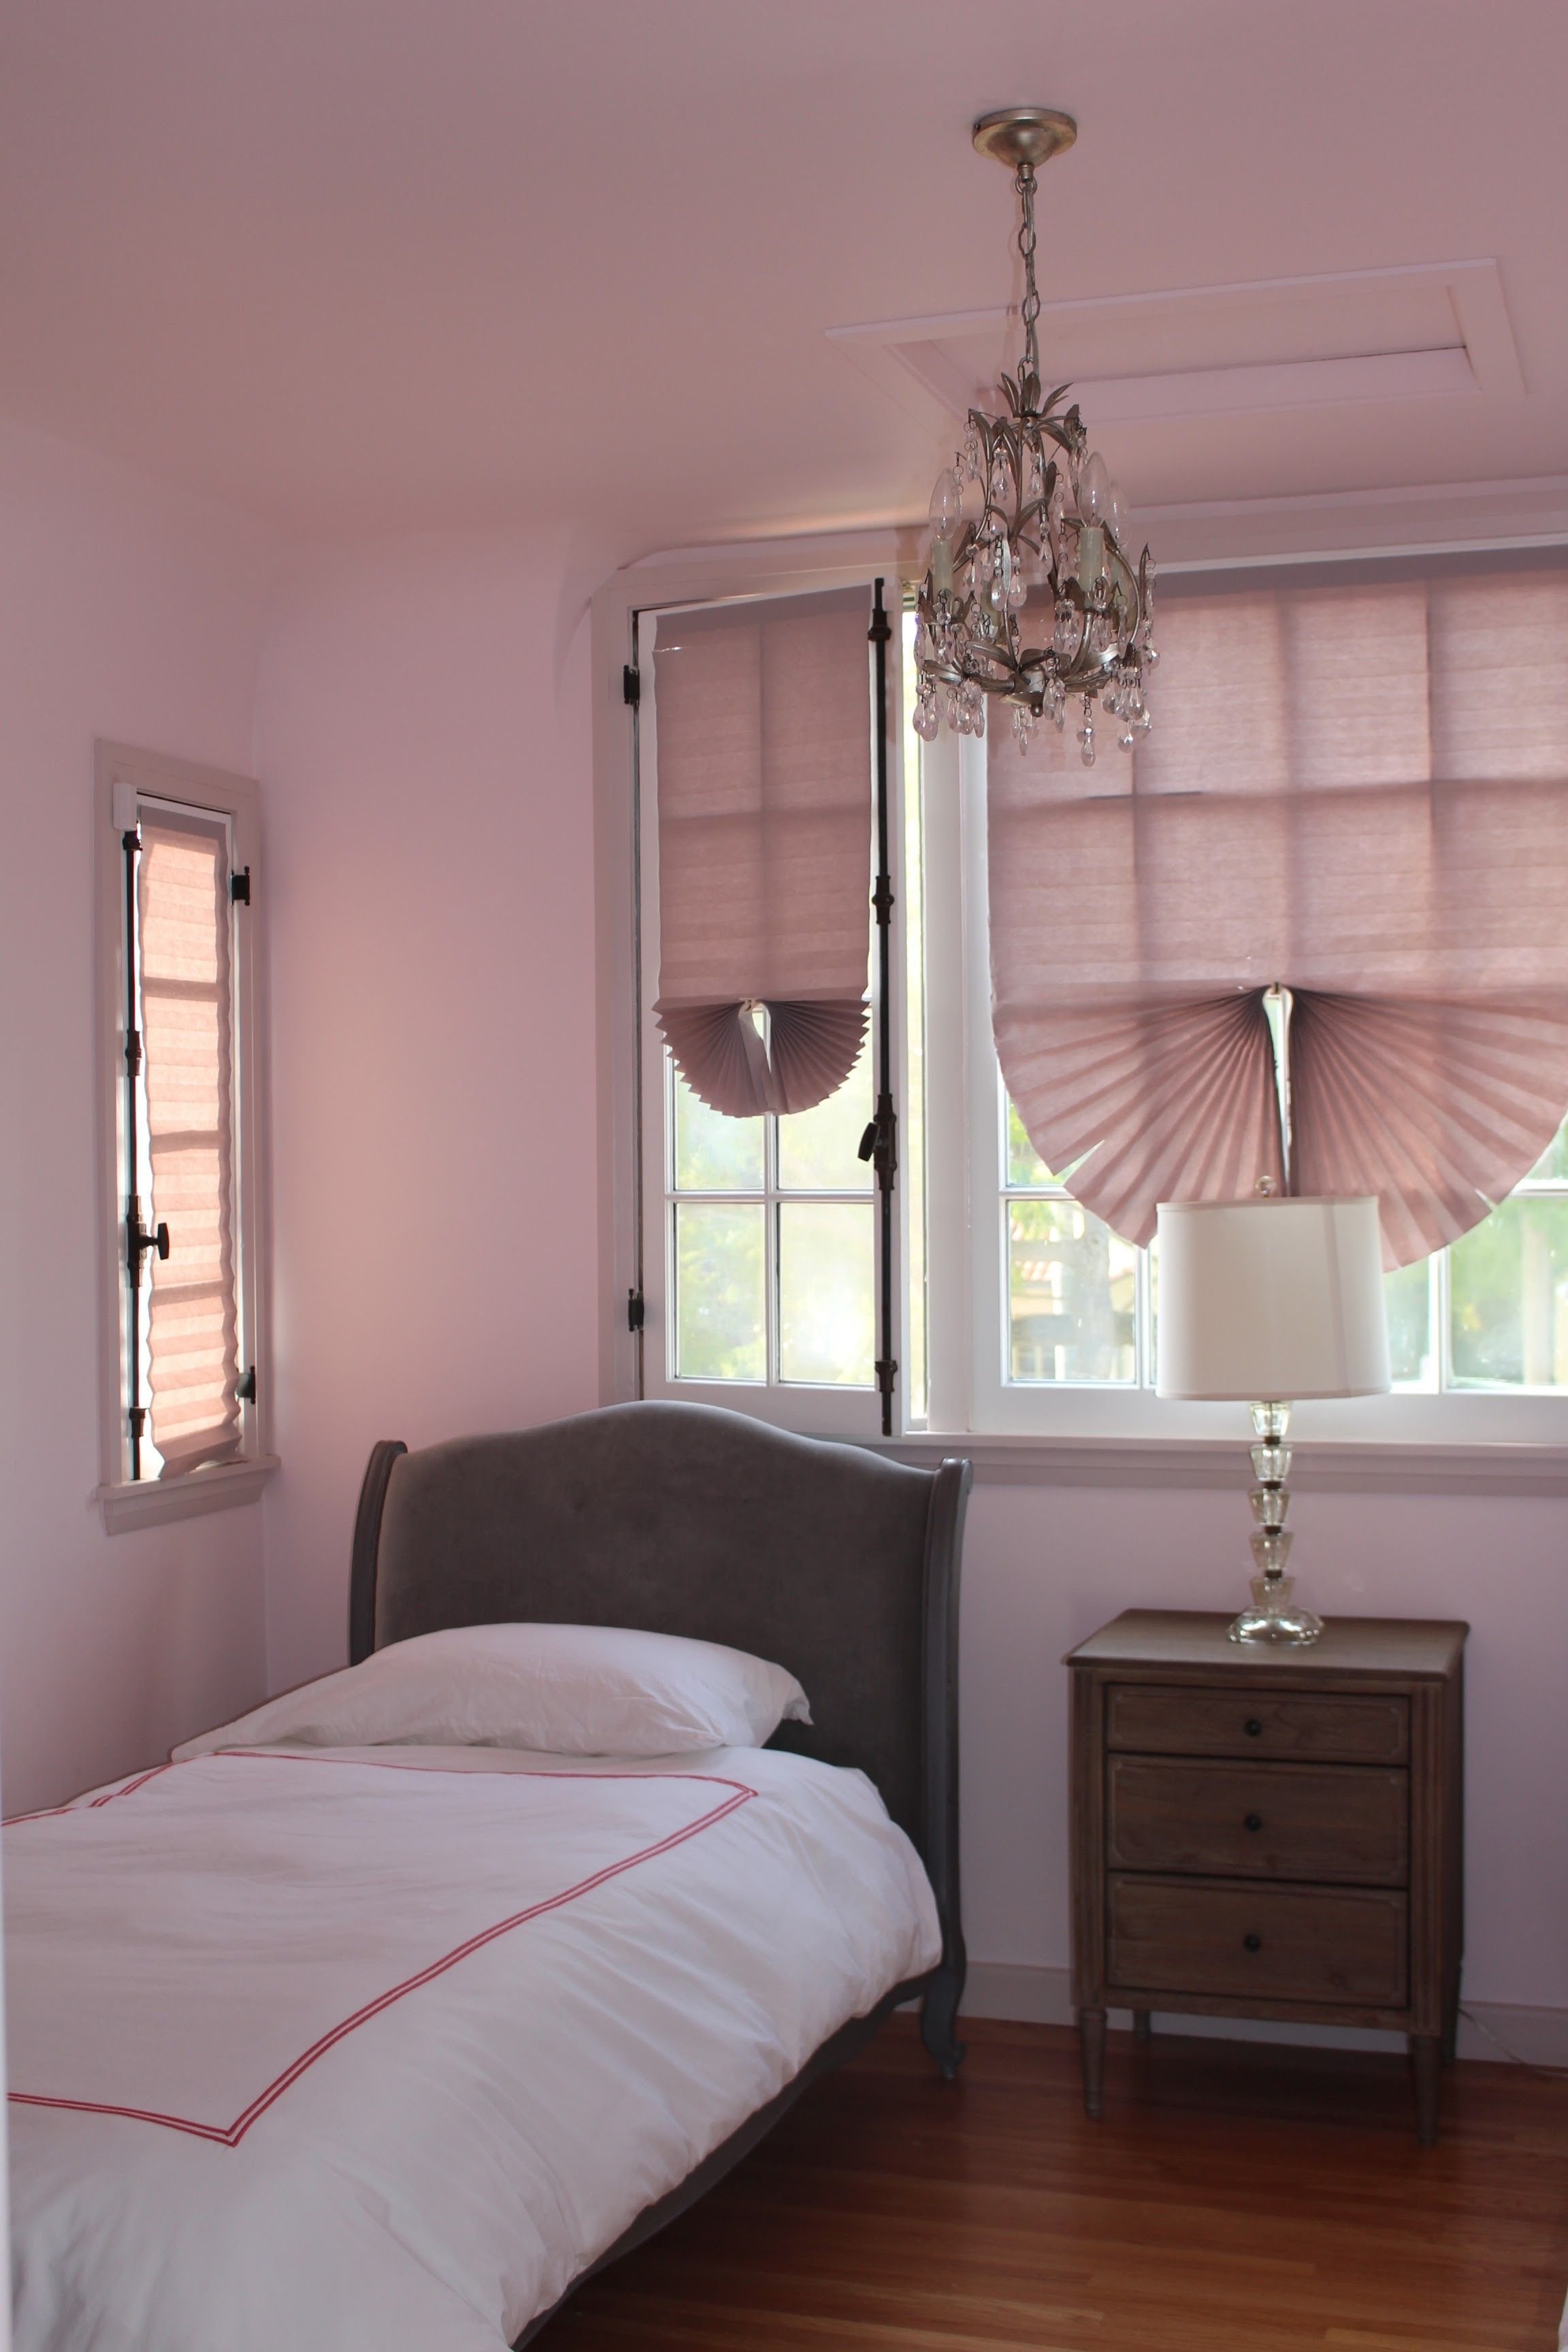 Girls Room Walls in Middleton Pink By Farrow  Ball Los Angeles  Paint Your Walls  Farrow